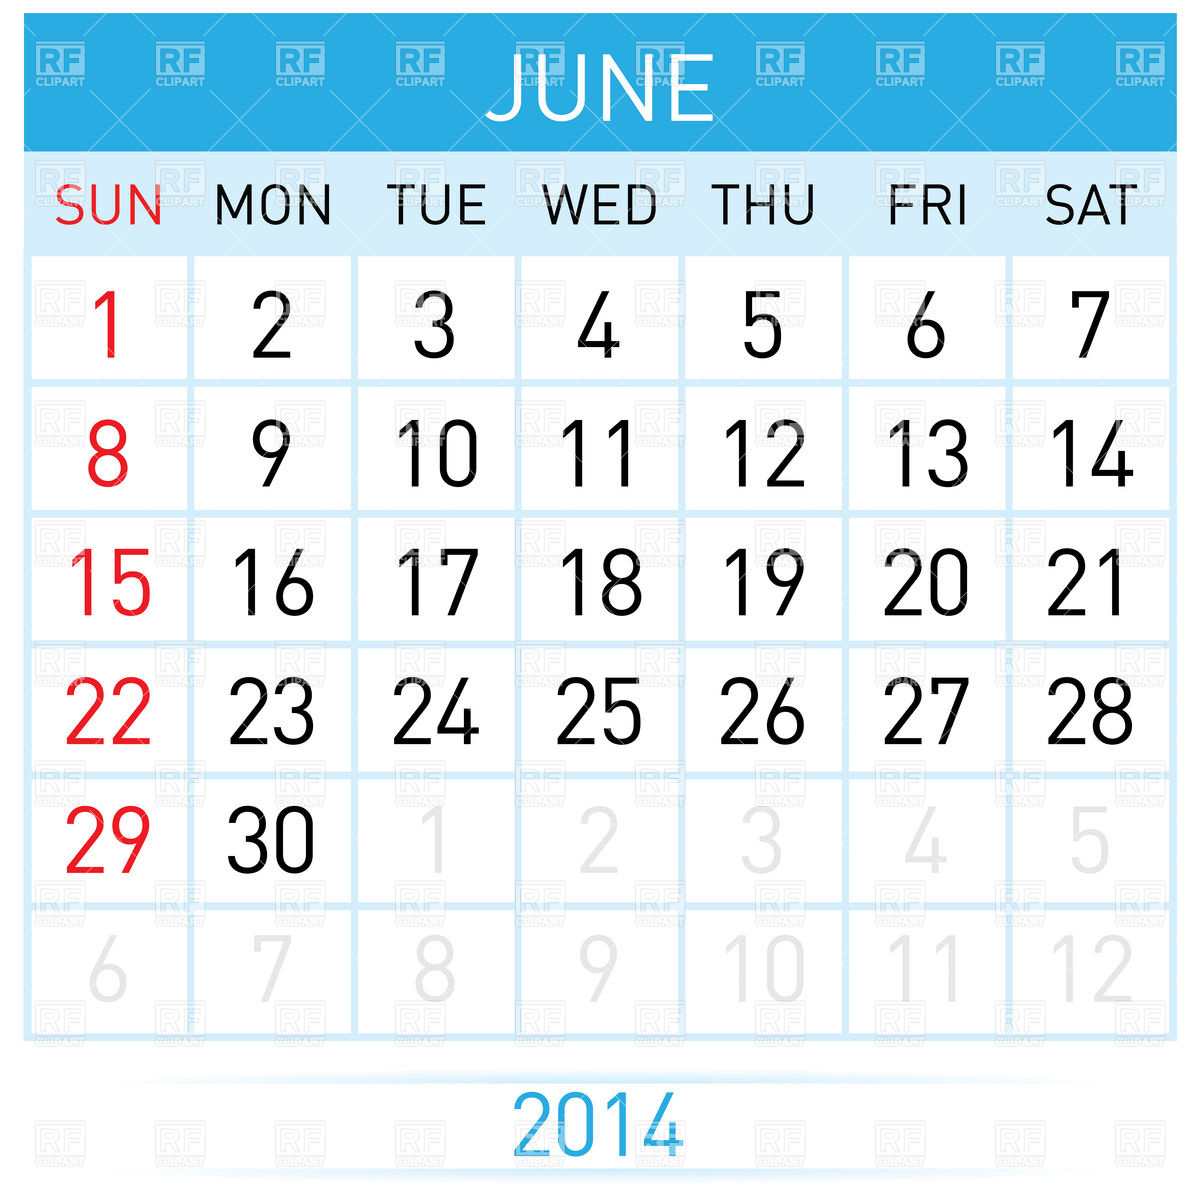 Calendar june image free rr collections jpg